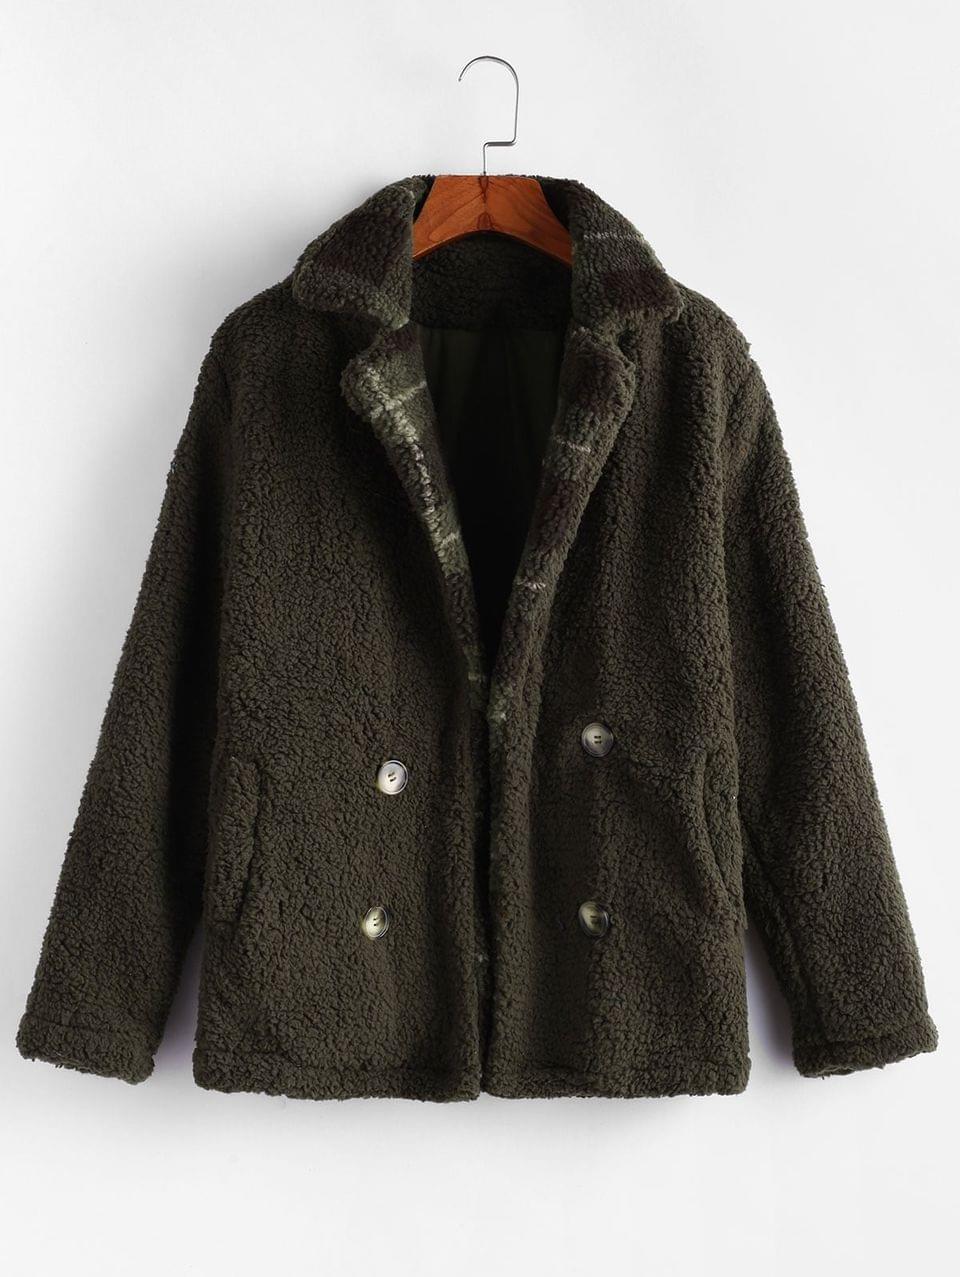 Women's Fuzzy Plaid Coat - Army Green M